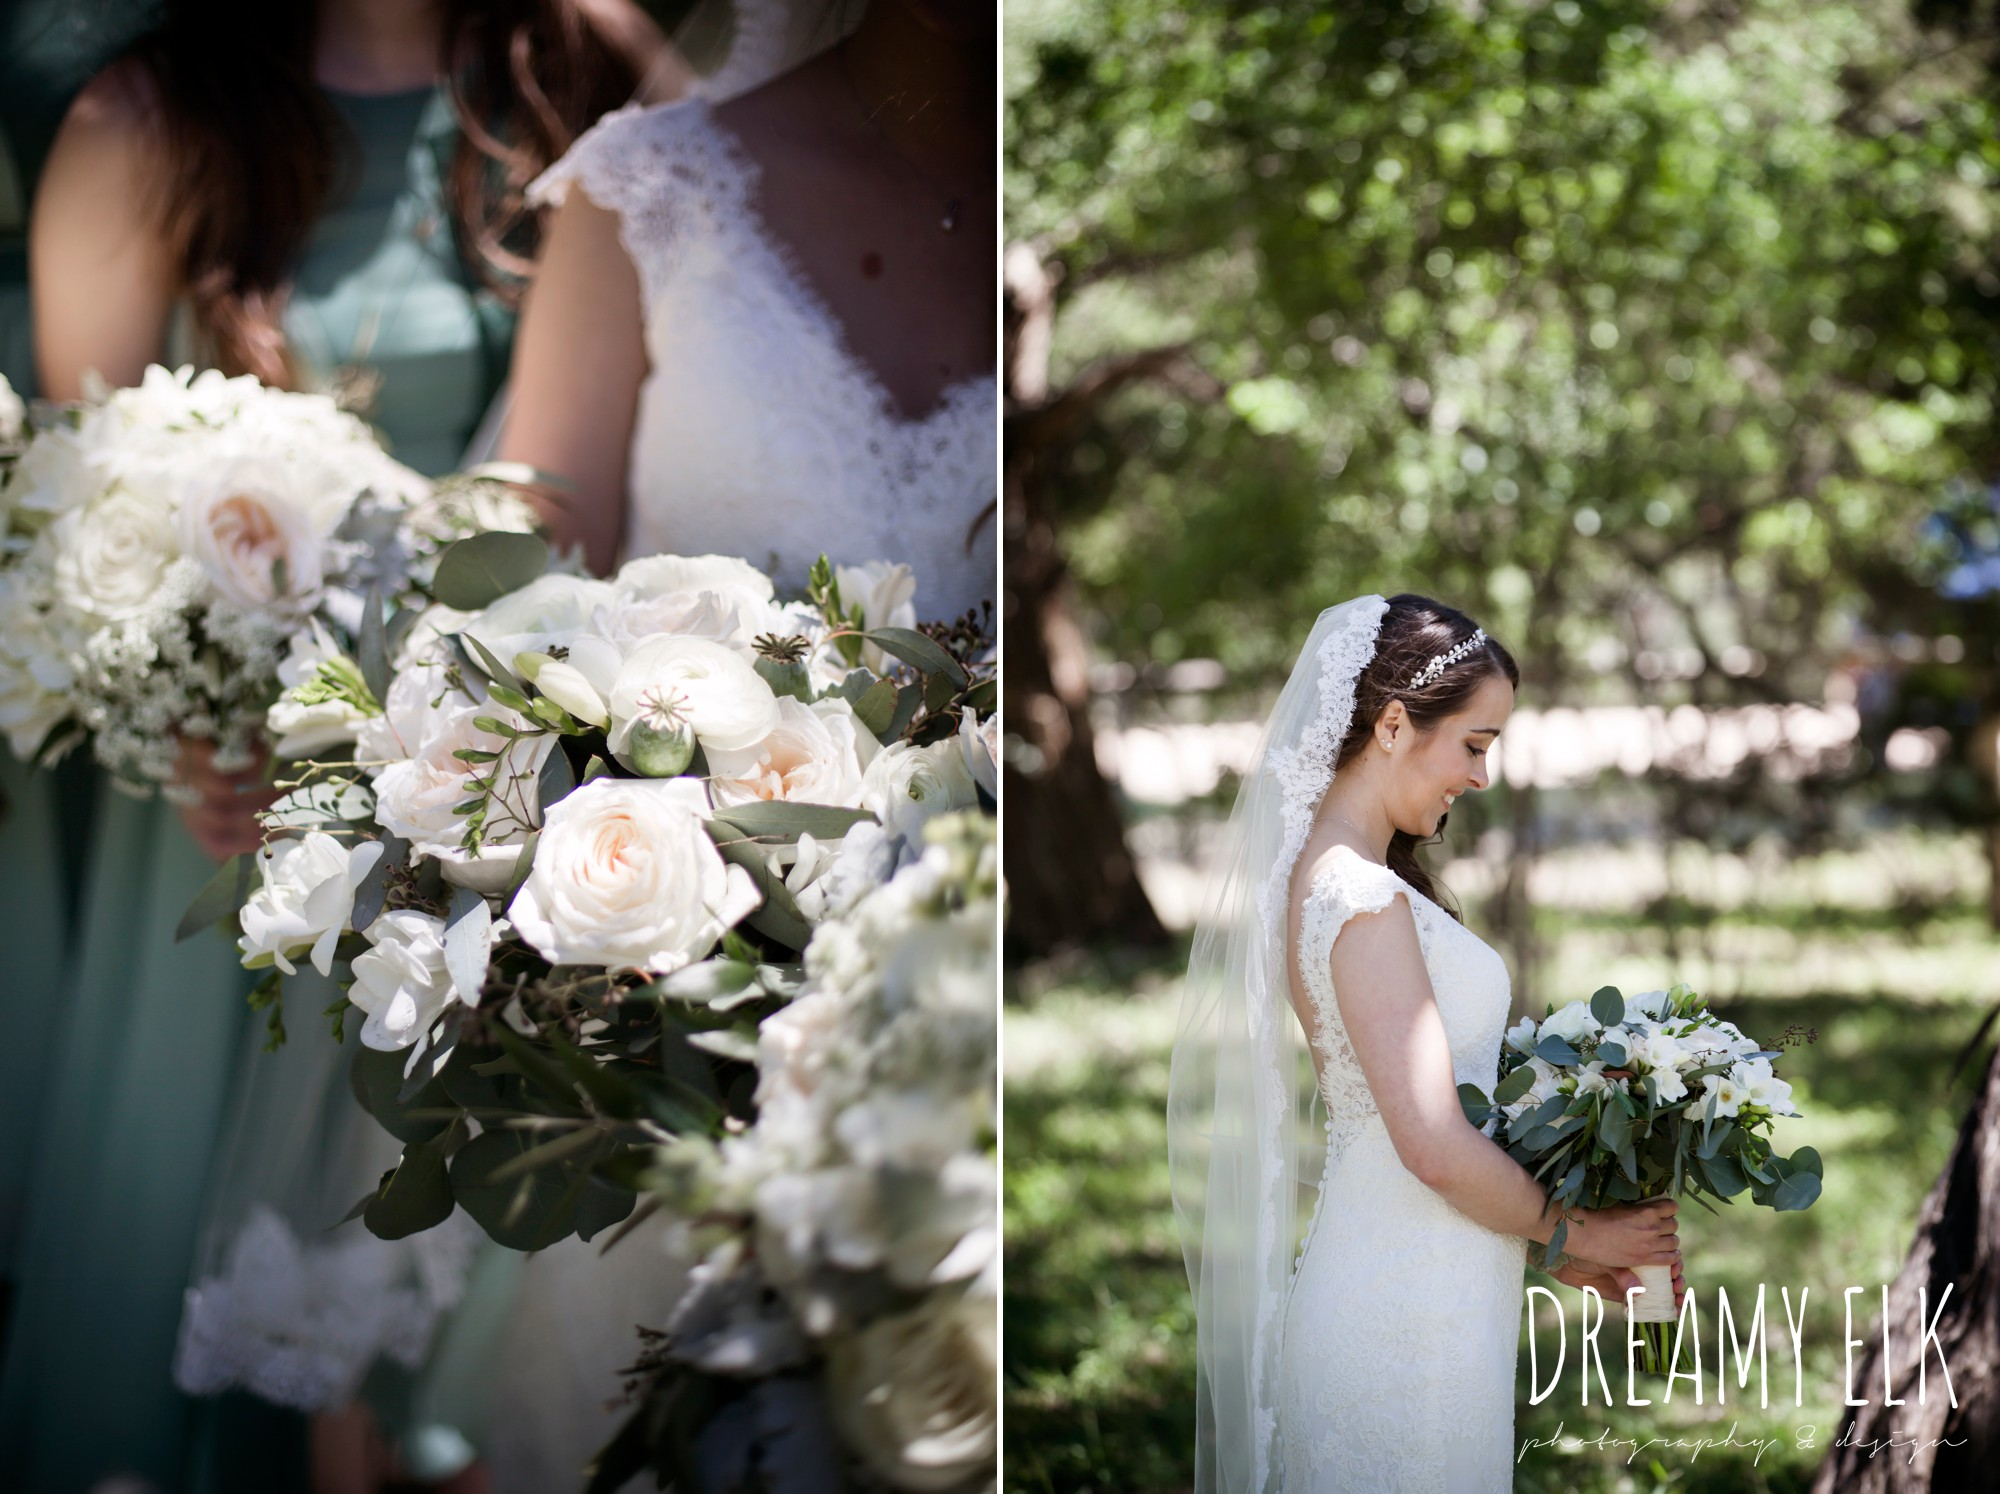 bride, bridesmaids, green bridesmaids dresses, mod cloth, lace wedding dress, lace wedding veil, white wedding bouquets, outdoor spring april wedding photo, chapel dulcinea ceremony, thurman's mansion, dripping springs, texas {dreamy elk photography and design}